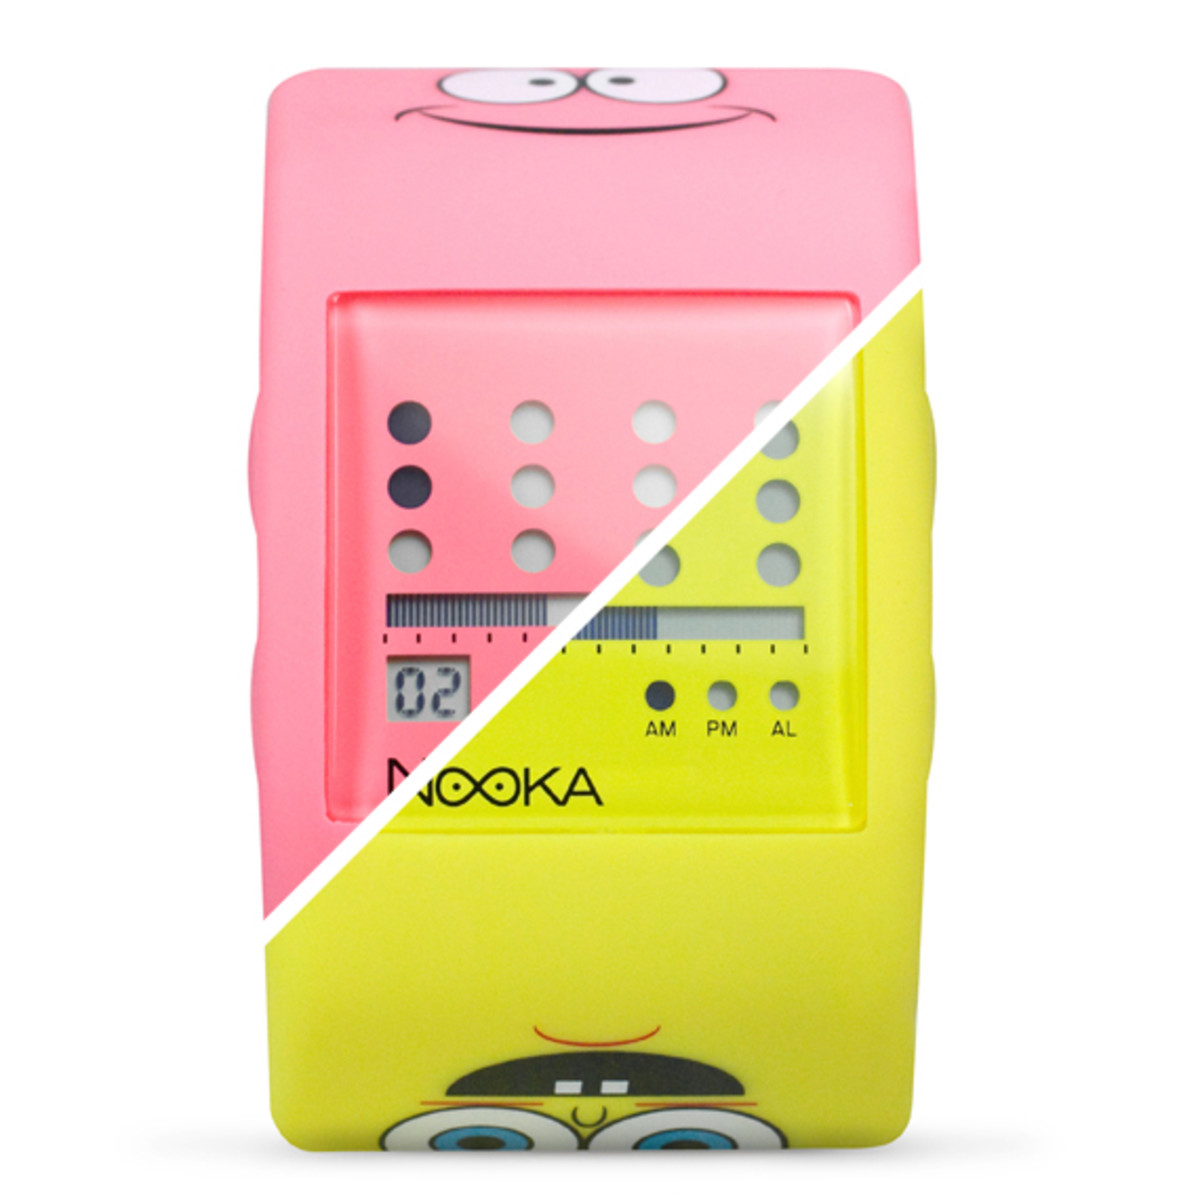 nooka-x-nickelodeon-x-dalek-zub-dot-watches